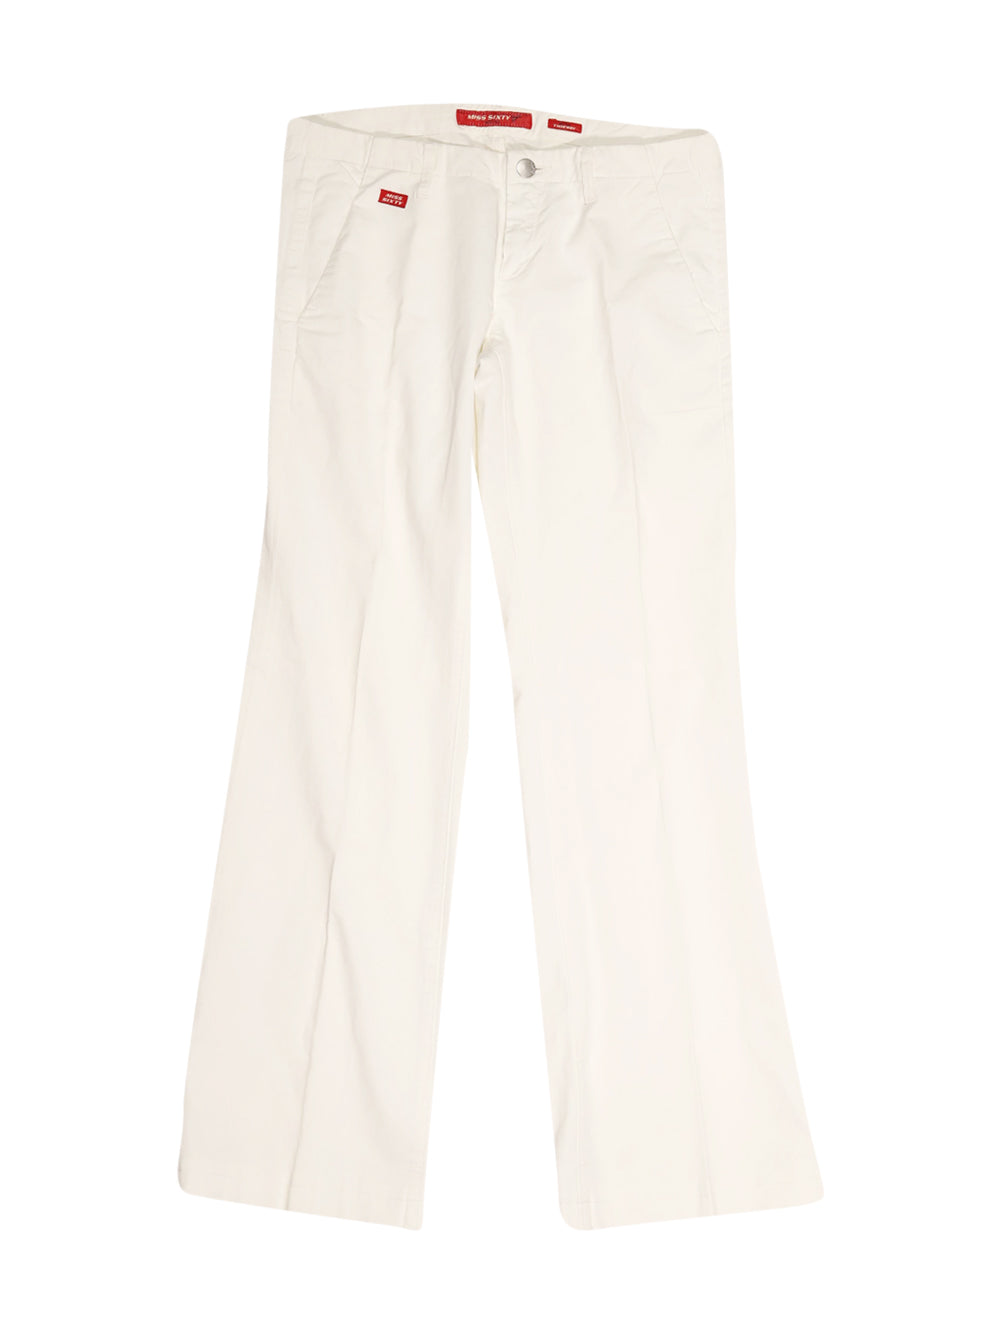 Front photo of Preloved Miss Sixty White Woman's trousers - size 8/S